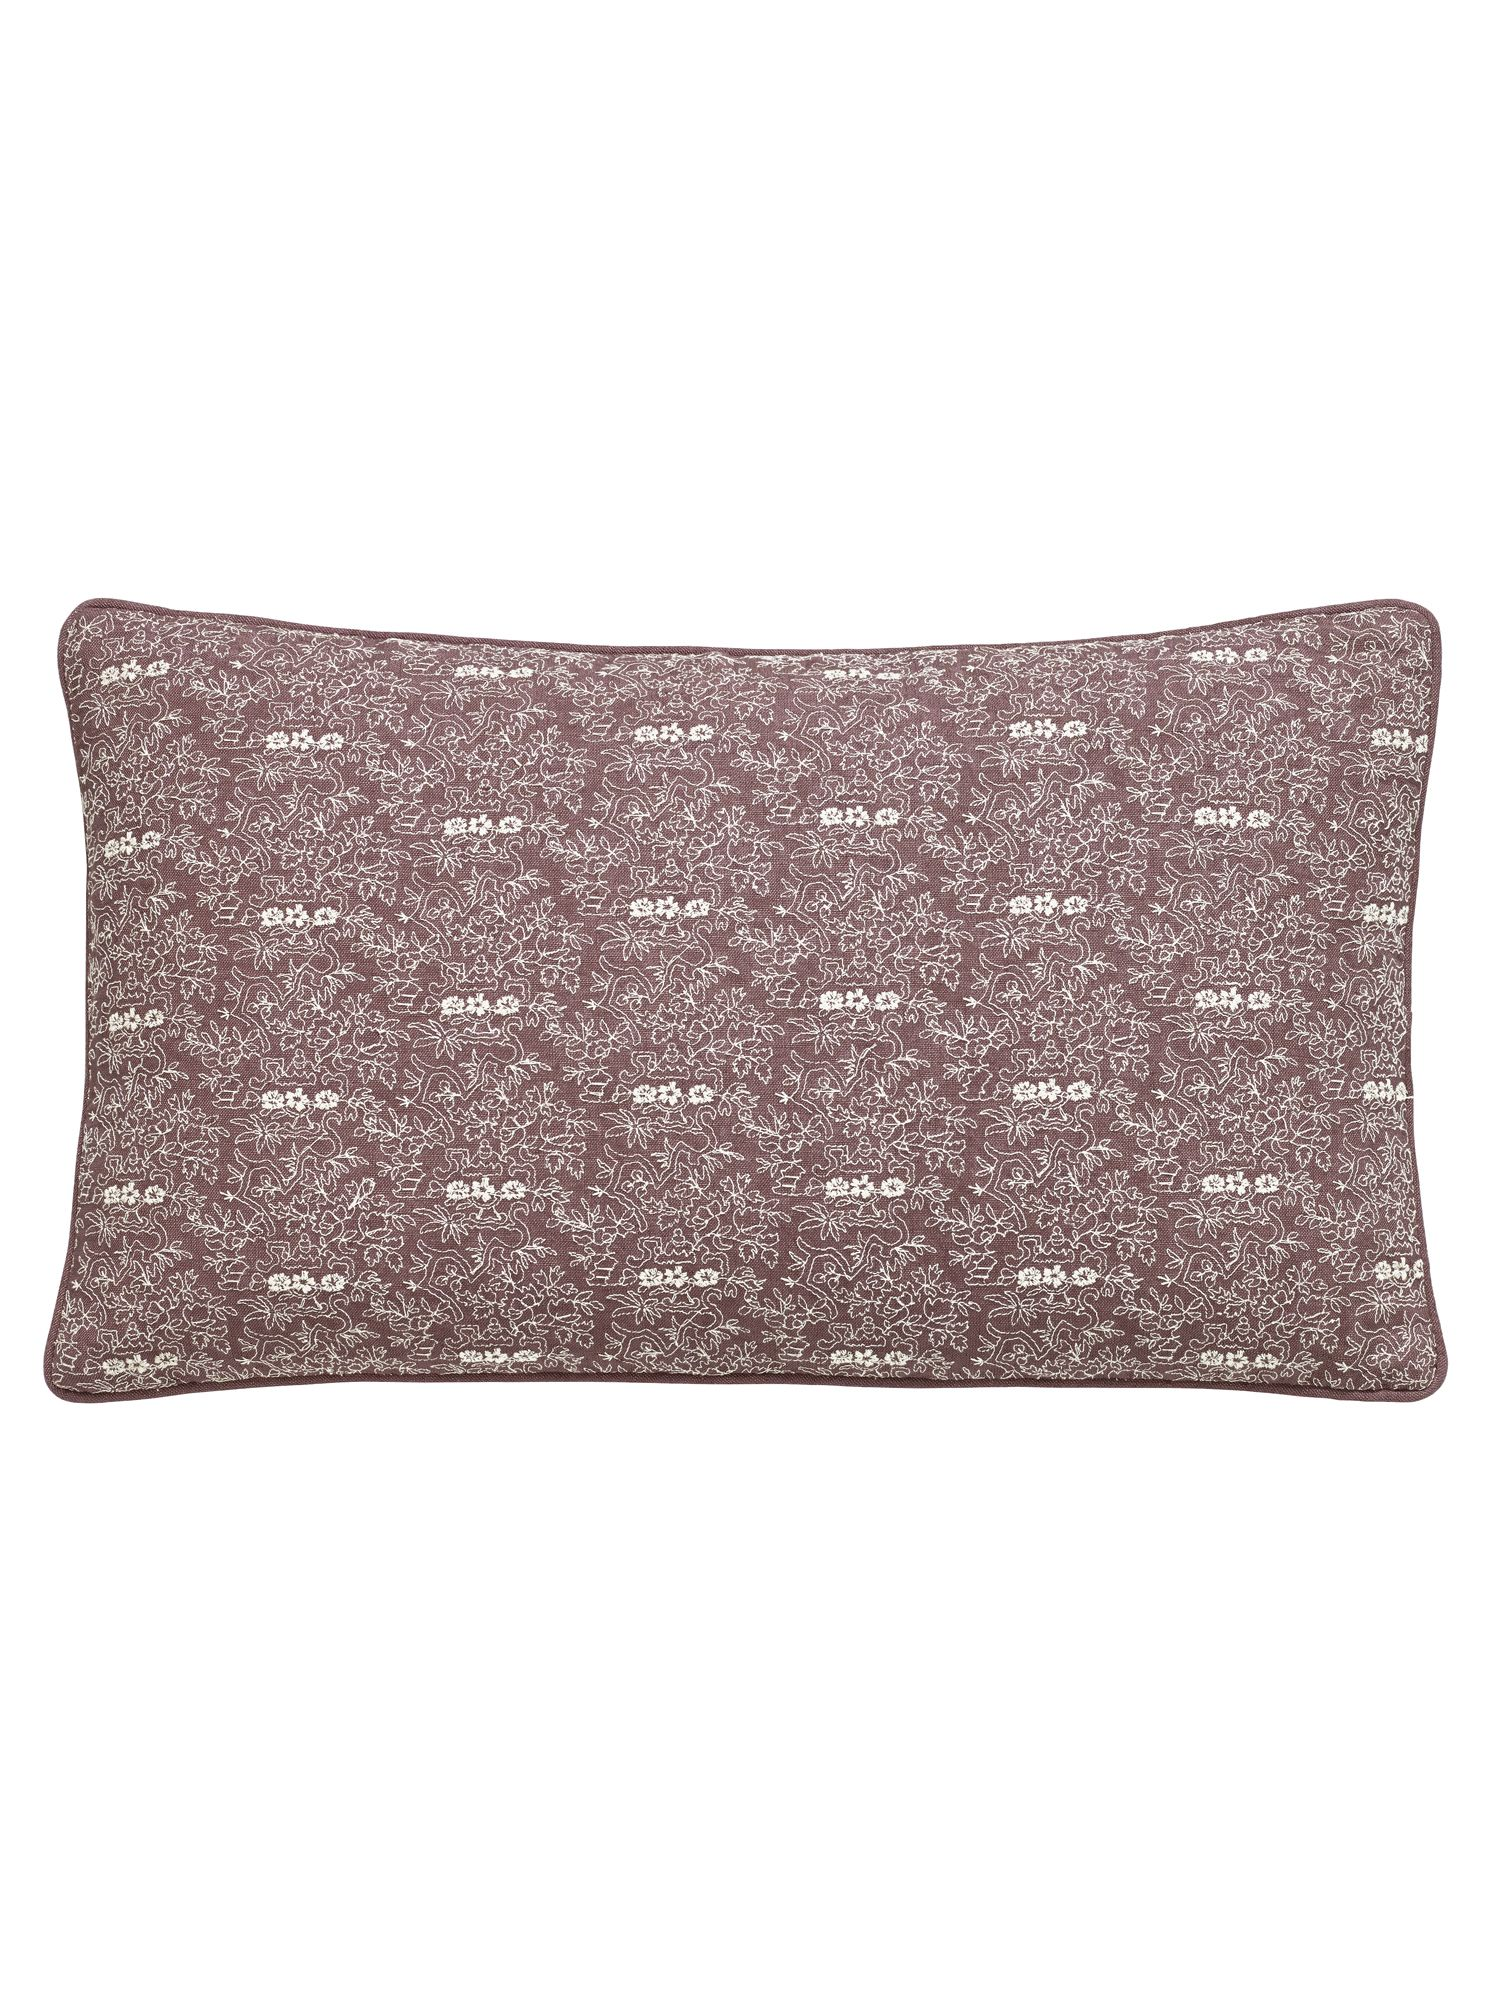 Image of Fable Albizia cushion 50x30cm amethyst